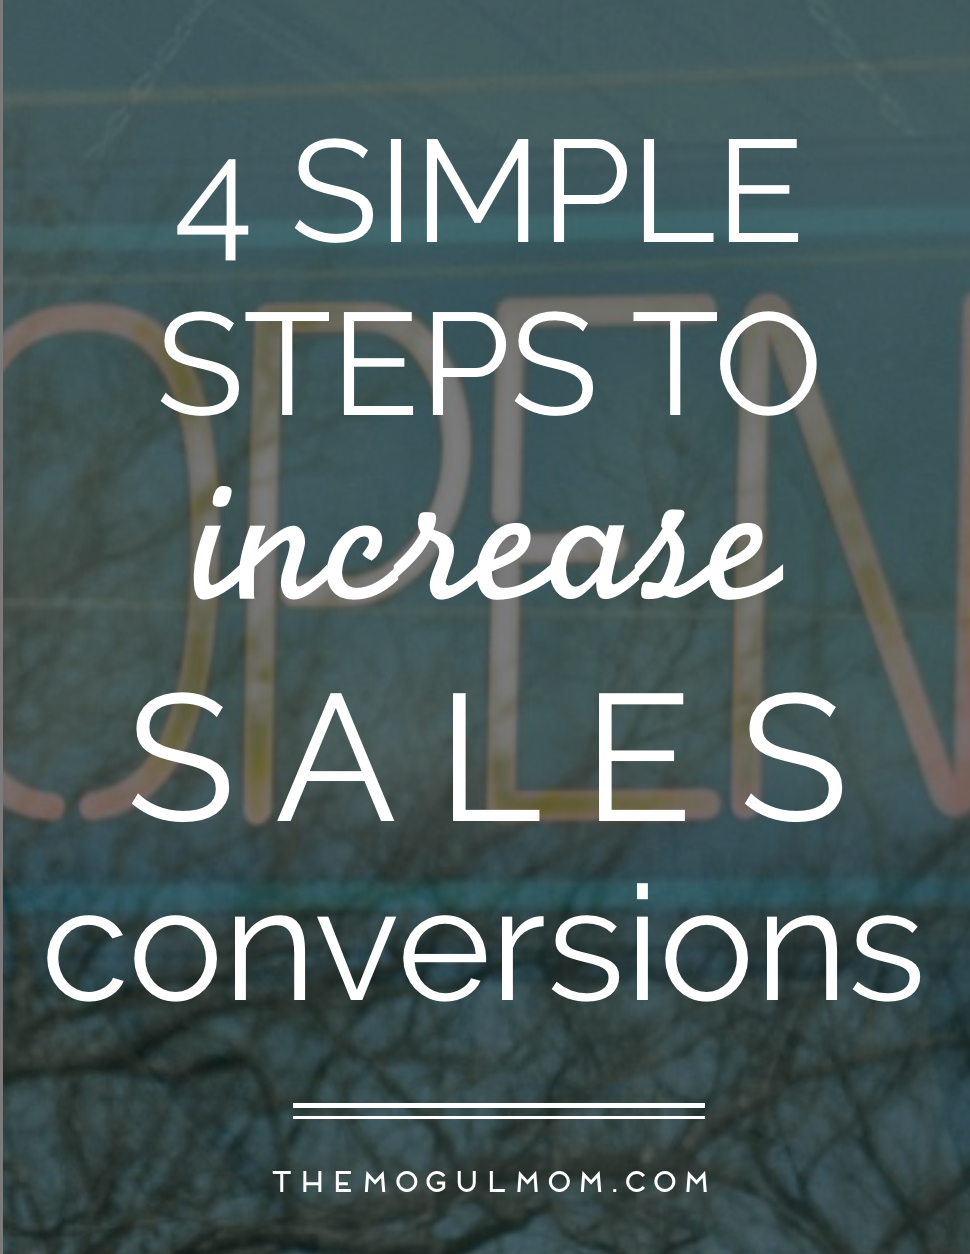 The Simple 4 Step Process to Increasing Sales Conversions